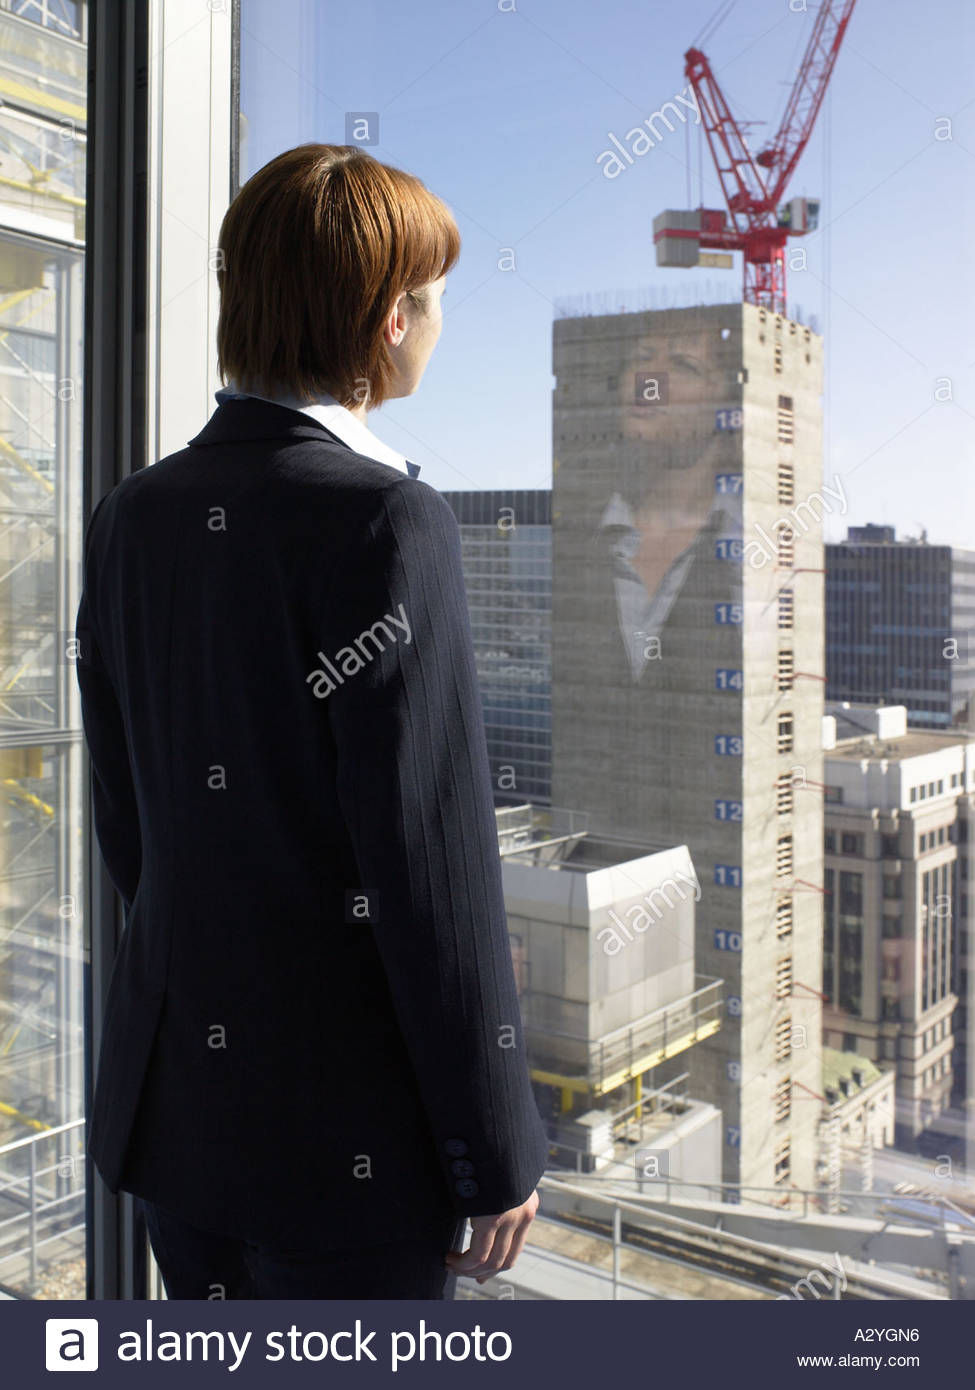 Businesswoman looking at a construction site - Stock Image